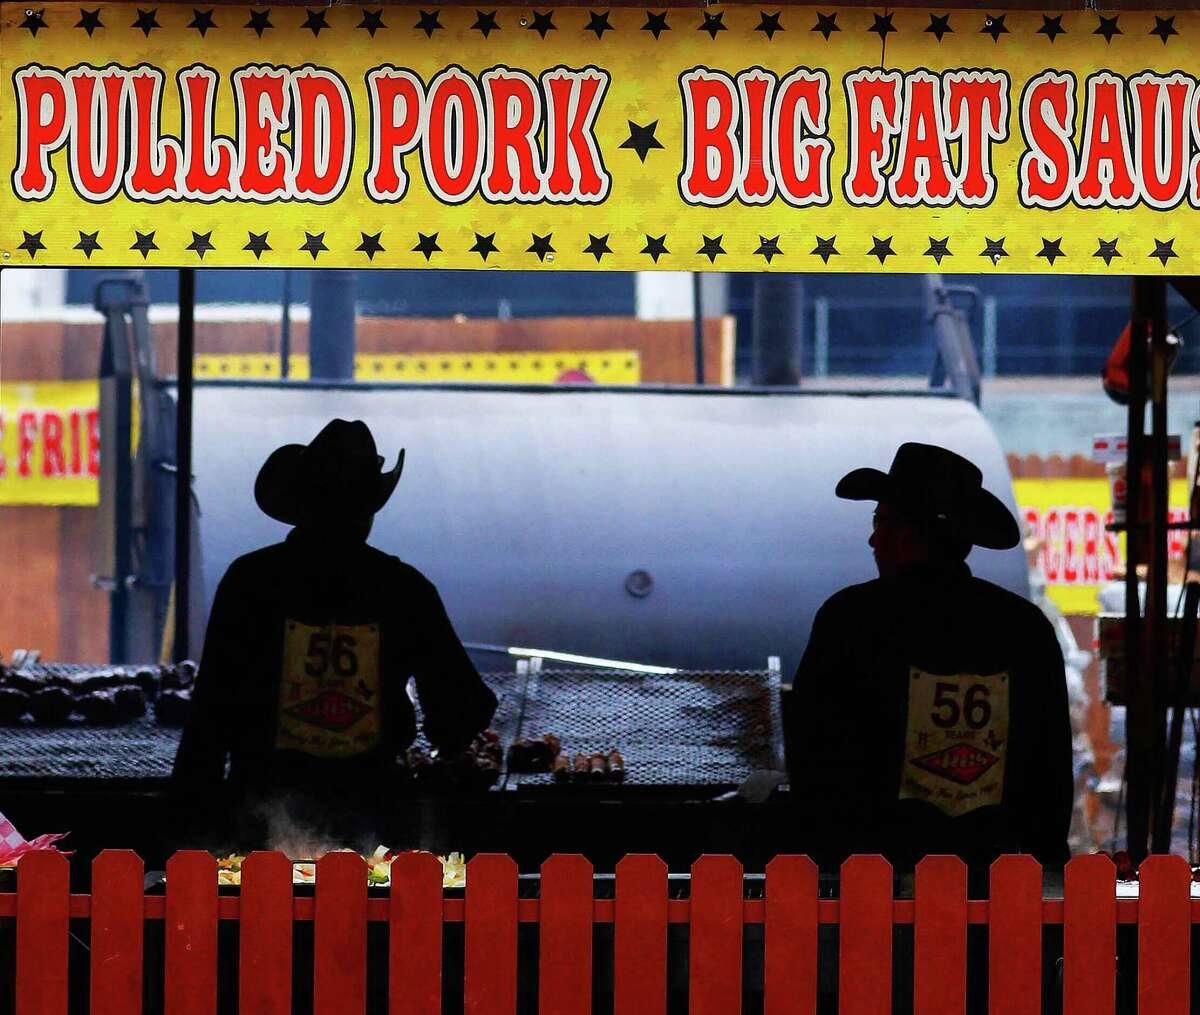 The food at the Houston Livestock Show and Rodeo runs the gamut from the classic to the unpredictable.